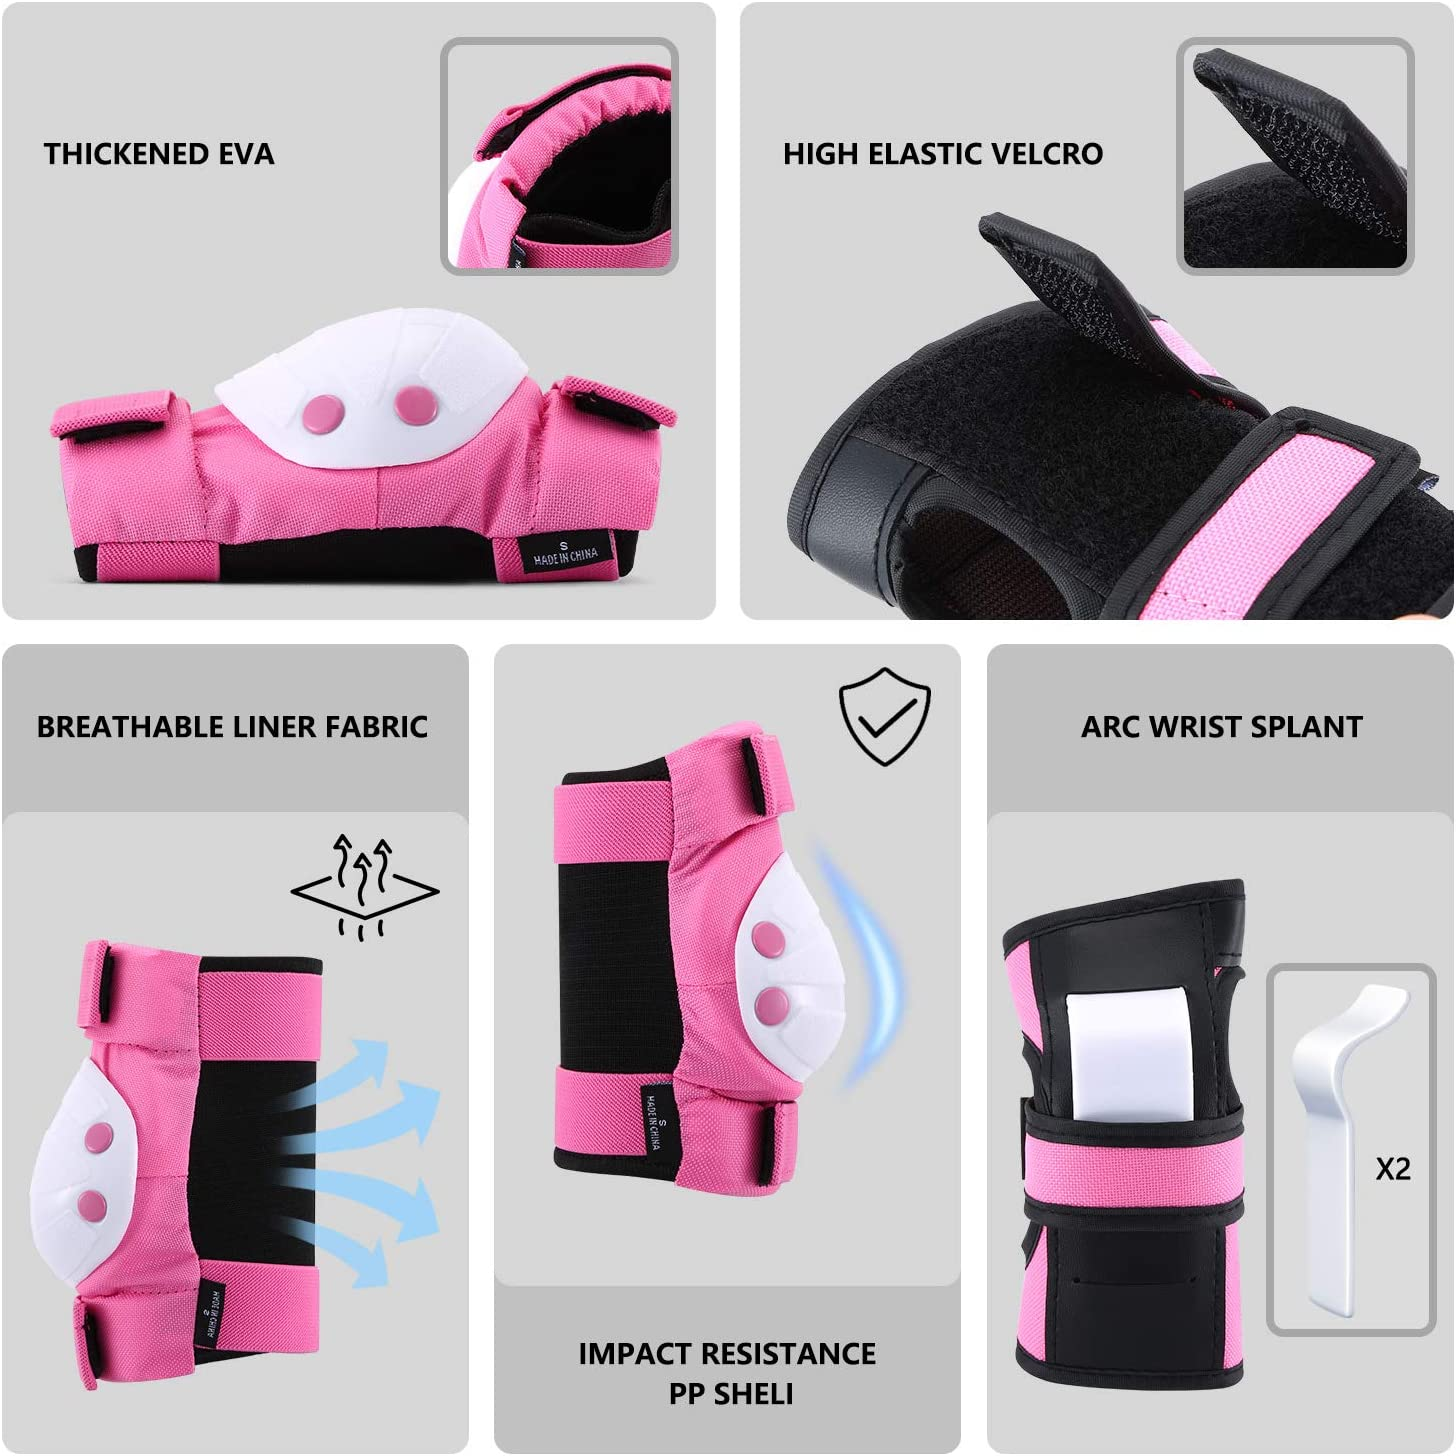 Scooter Riding Wrist Guards 3 in 1 Protective Gear Set for Rollerblade Lumb Kids Knee Pad BMX Bike Roller Skating Elbow Pads Cycling Skateboard Sport Pads for Youth Boys and Girls.